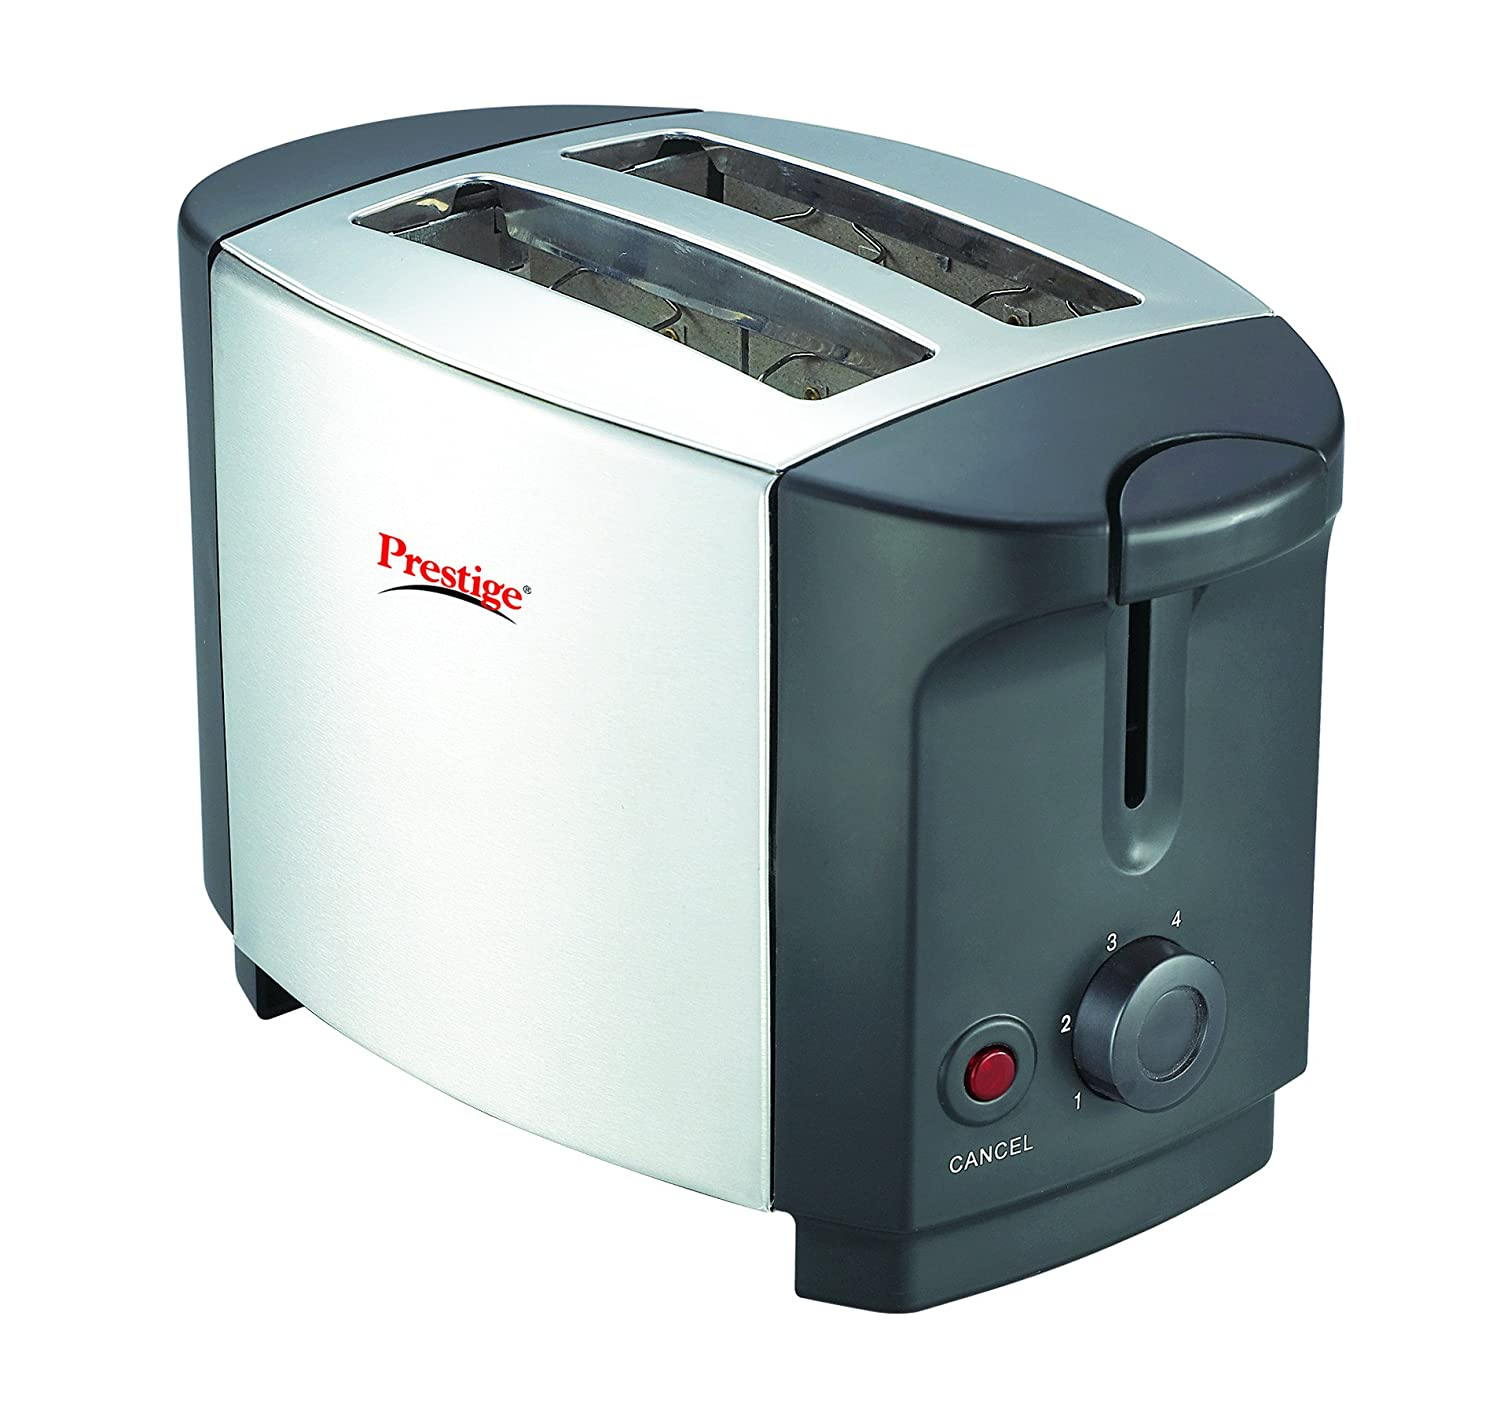 Buy Prestige PPTSKS 750-Watt Pop-up Toaster Online at Low Prices ... | {Toaster 40}